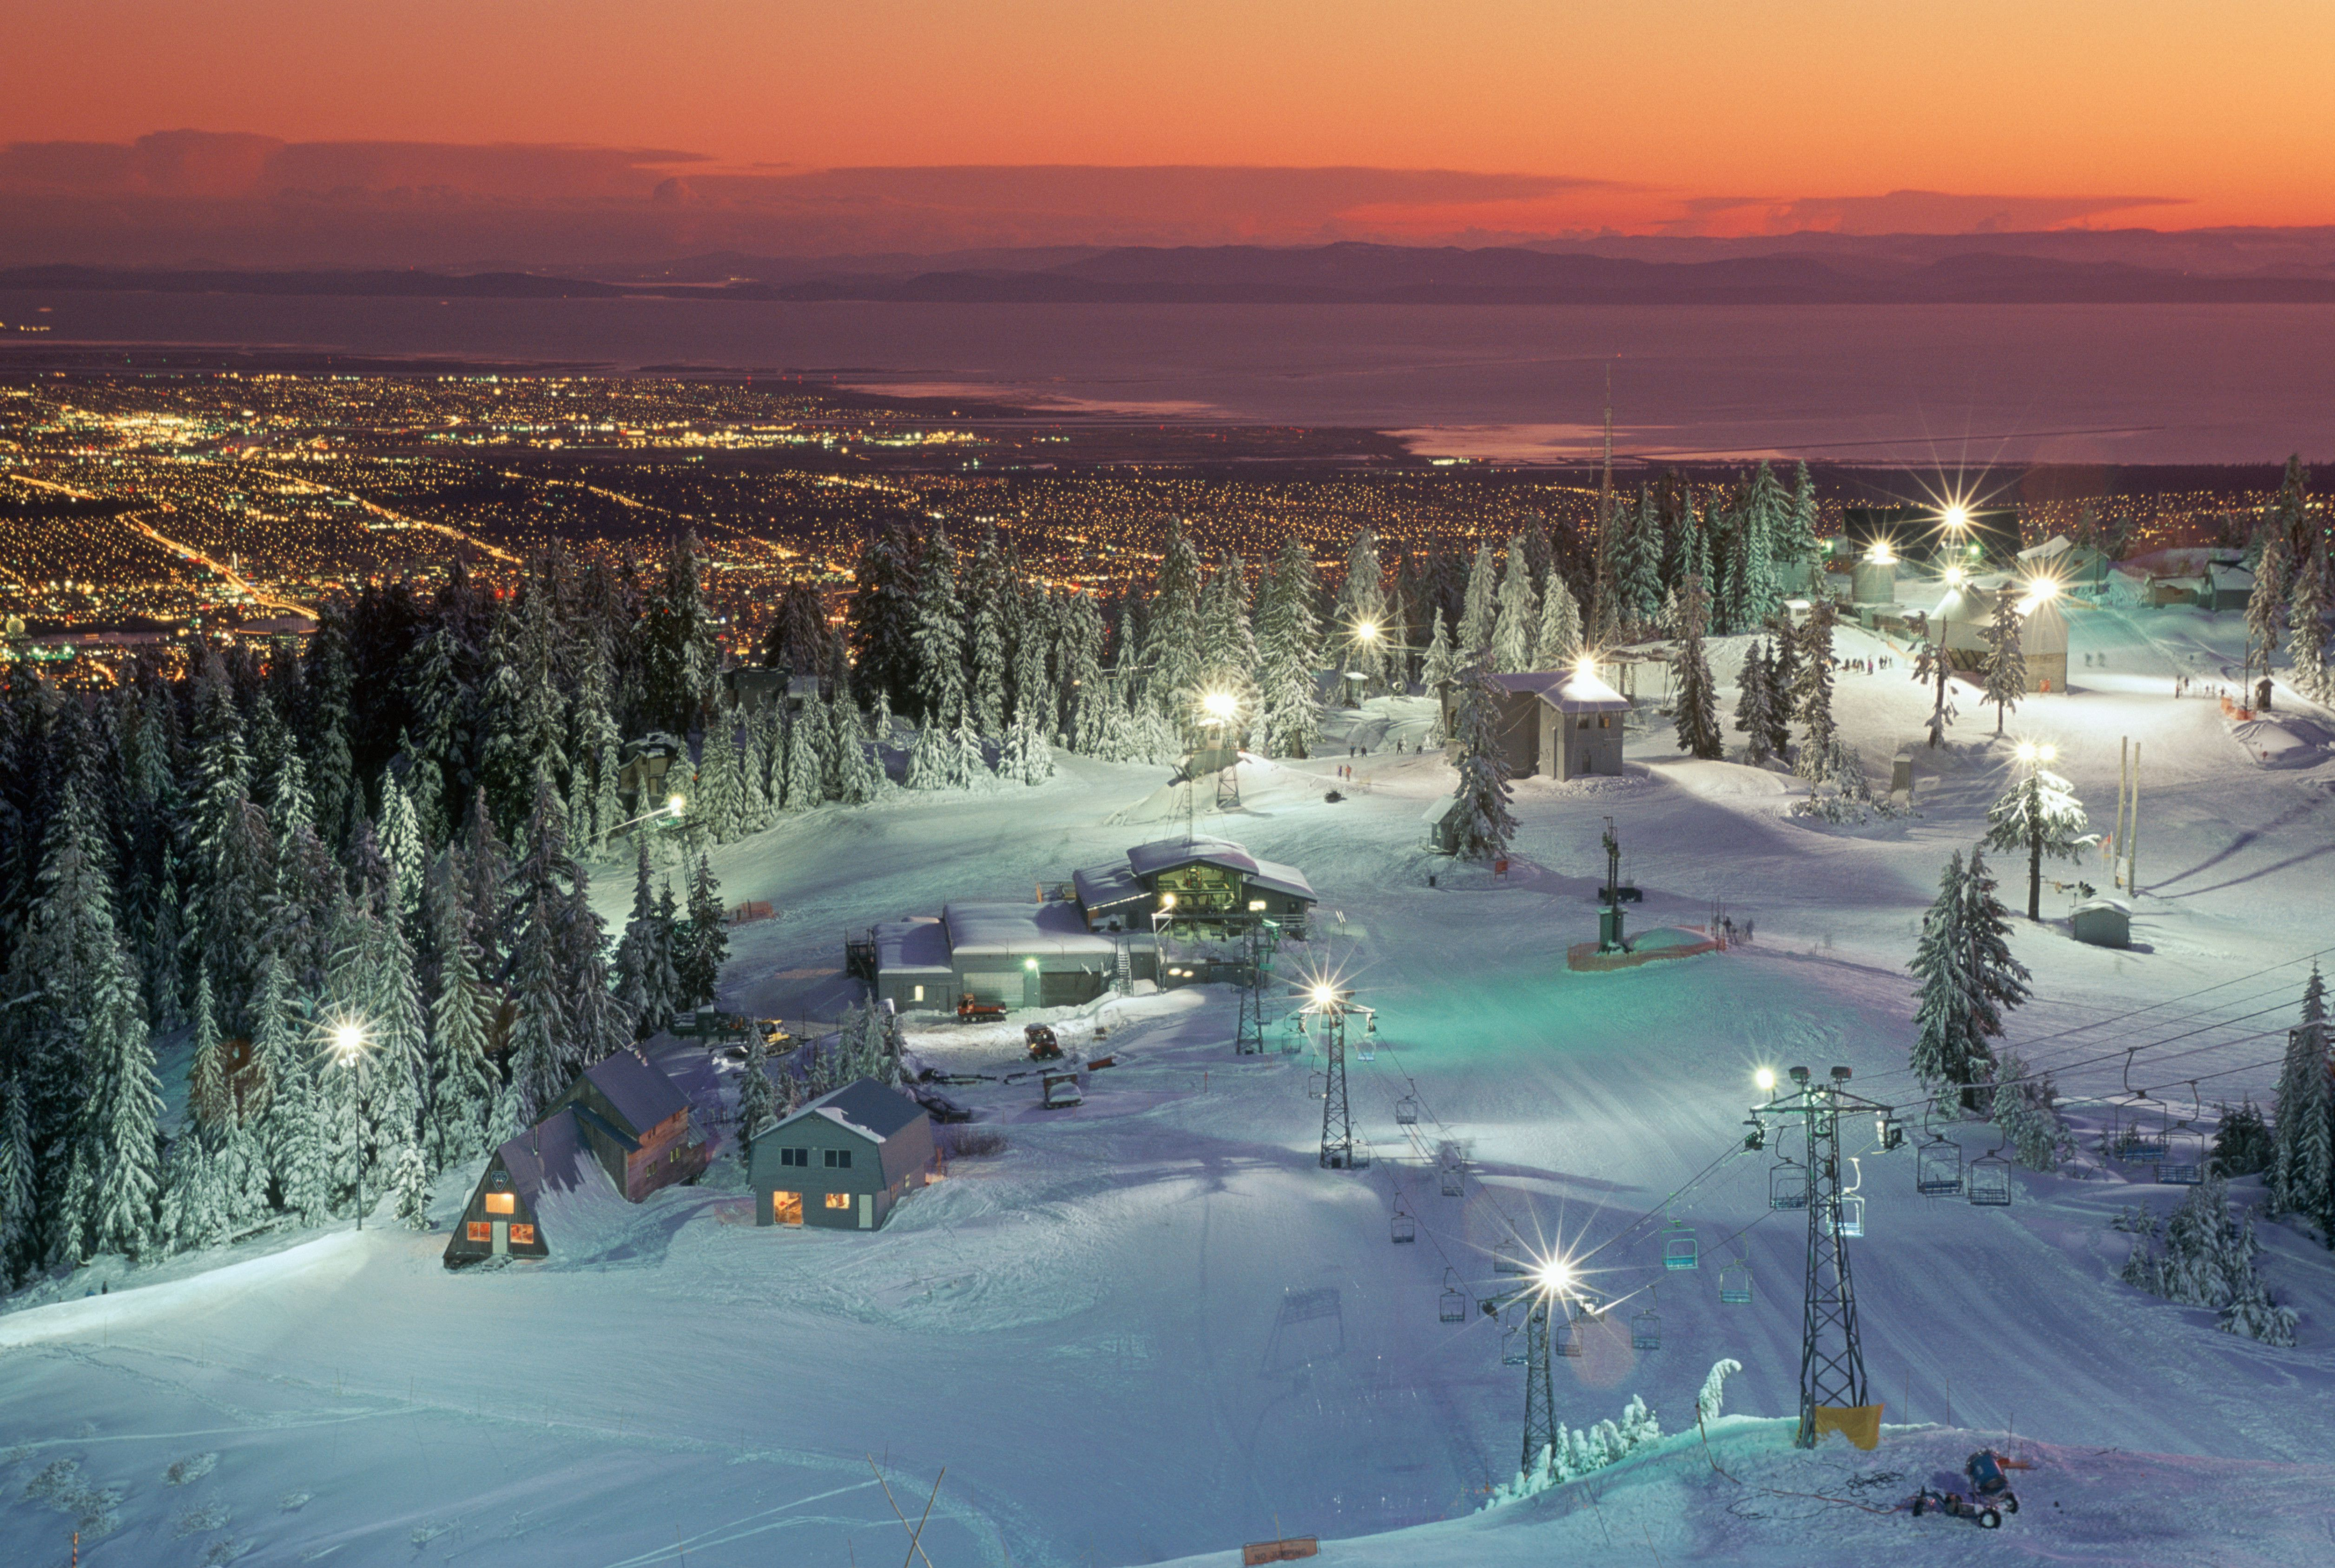 North Vancouver, Grouse Mountain, British Columbia